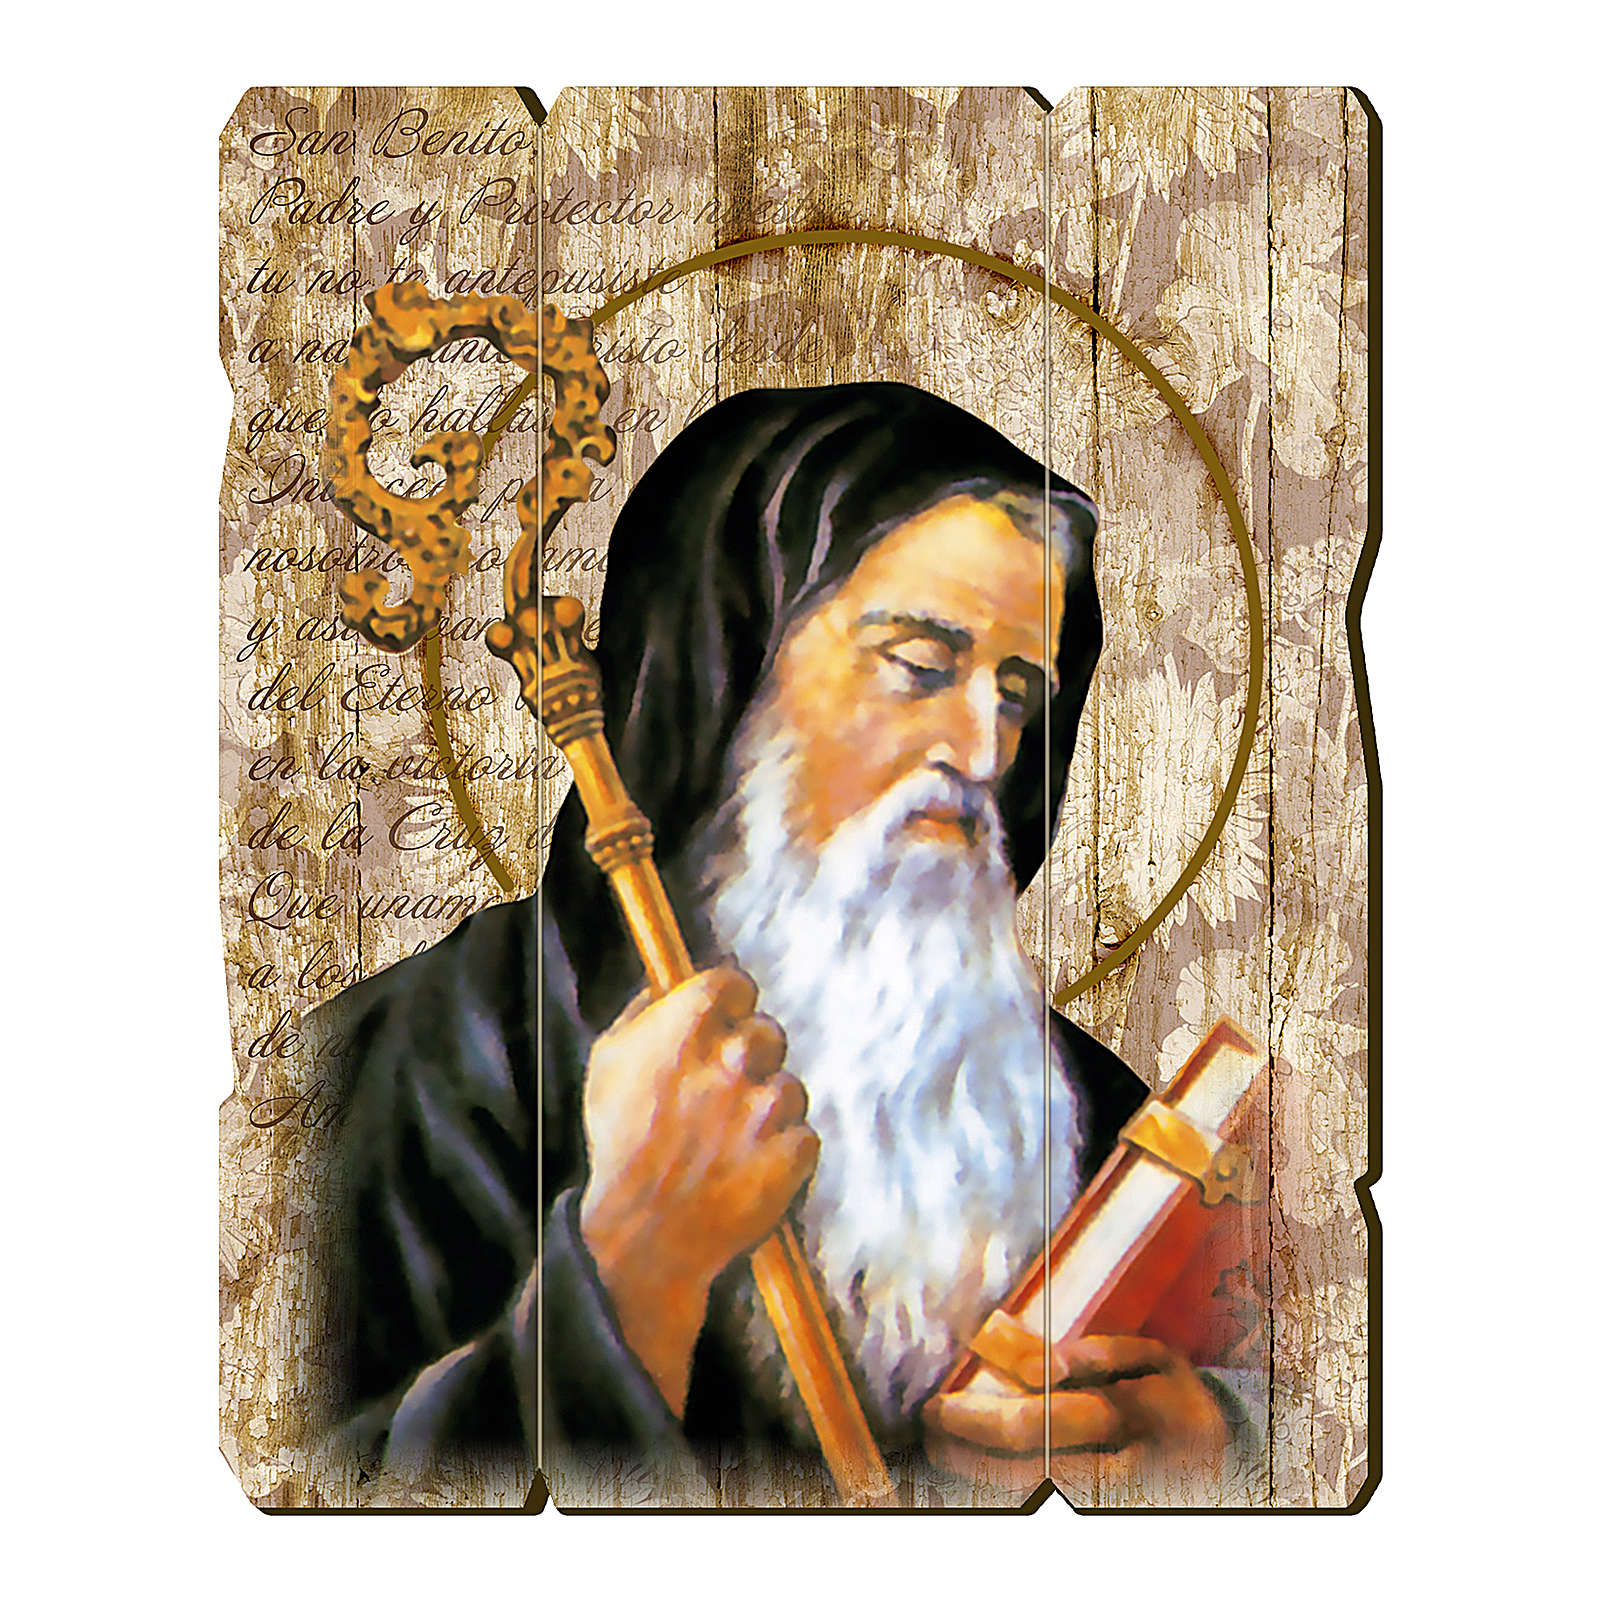 Saint Benedict painting in moulded wood with hook on the back 35x30 cm 3